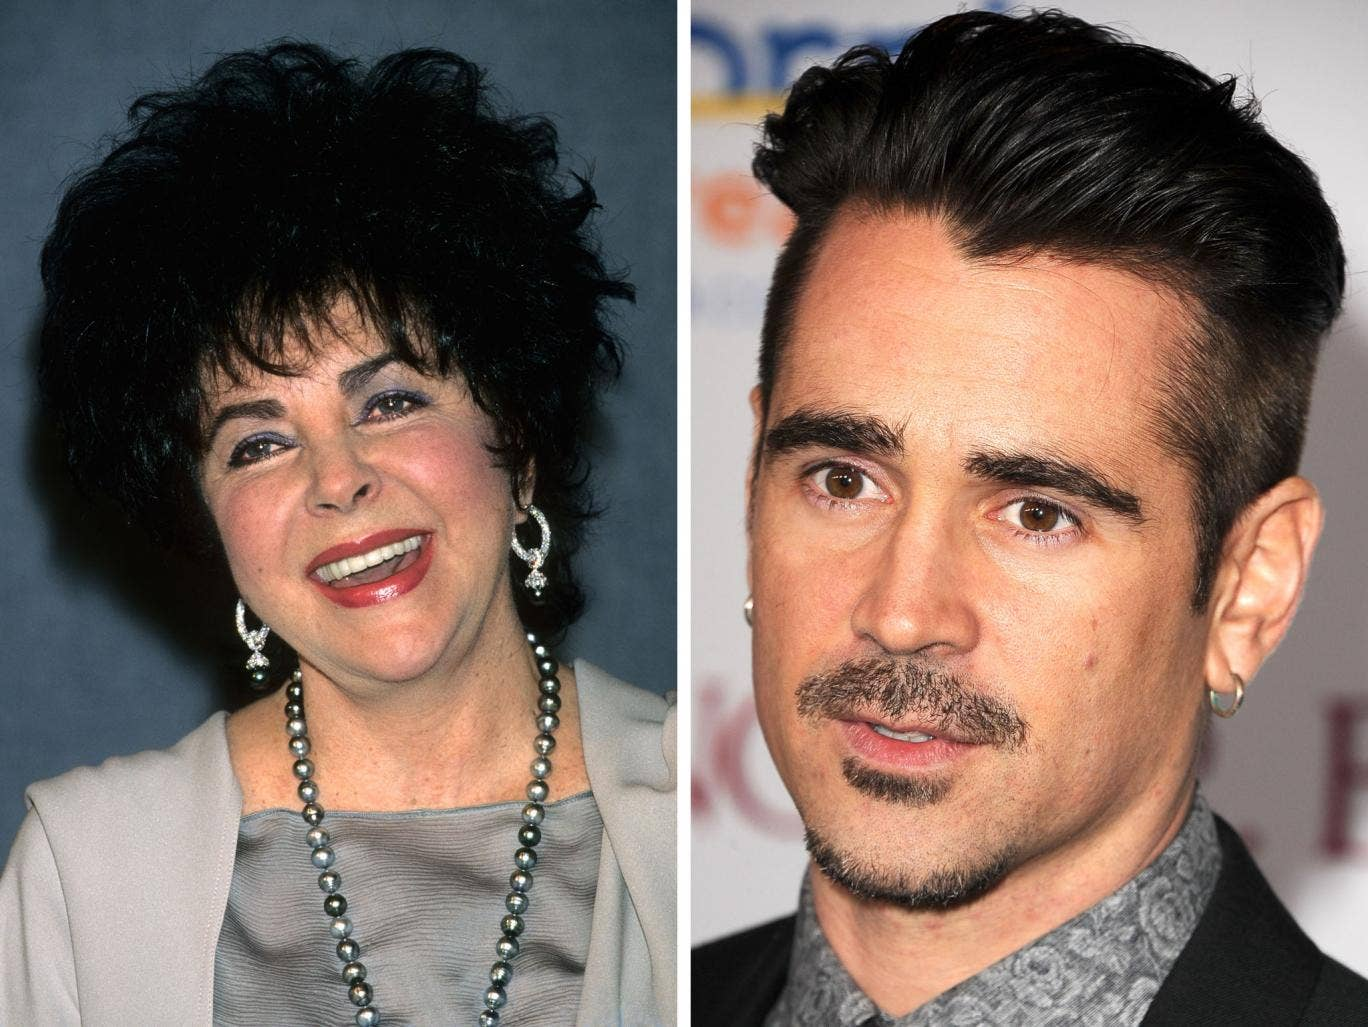 Colin Farrell has revealed that he enjoyed an unusually close relationship late actress Elizabeth Taylor before she passed away in 2011 aged 79.